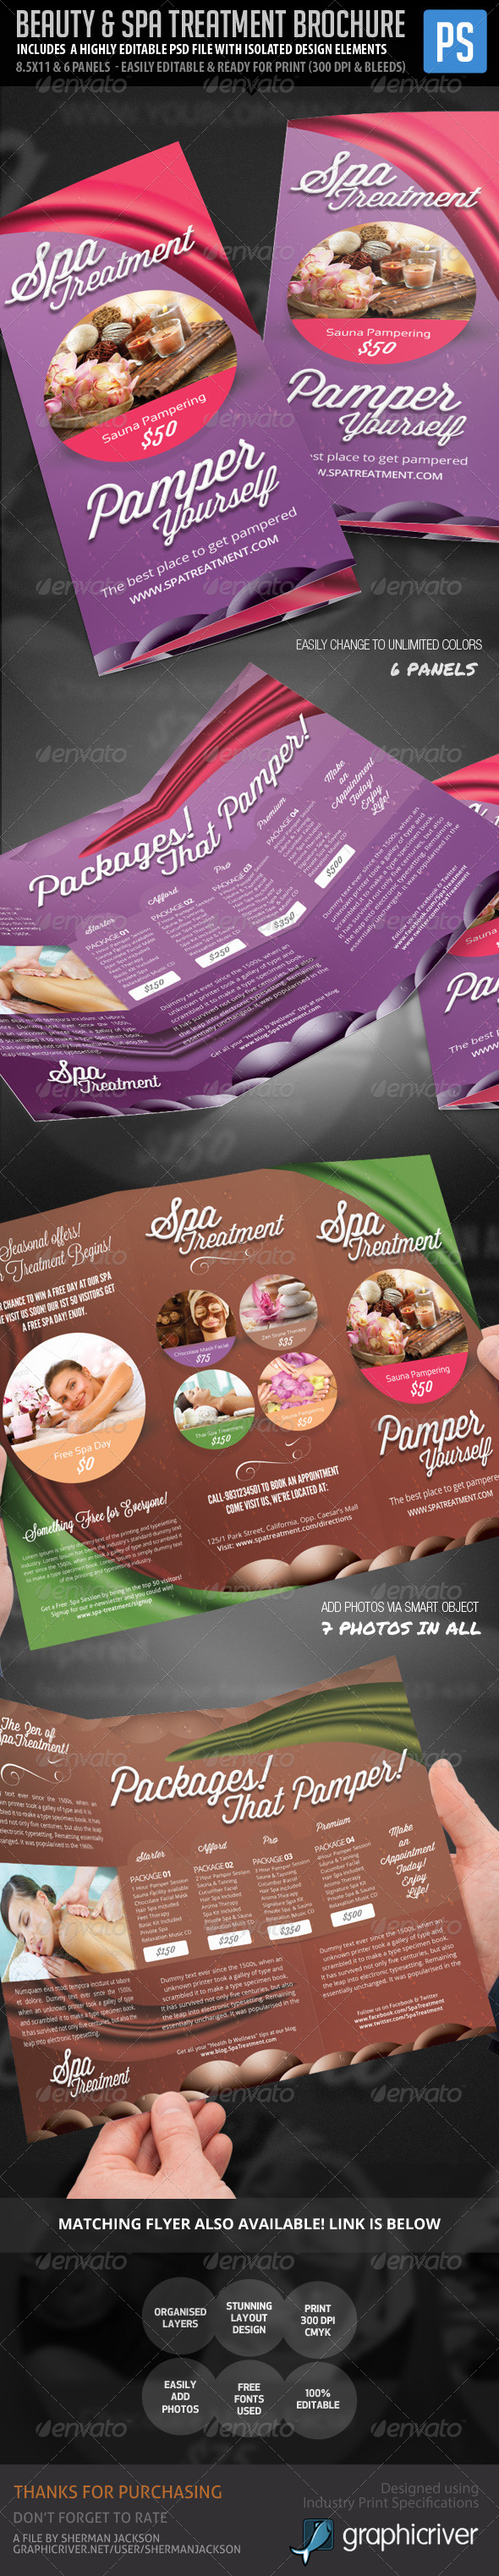 Beauty & Spa Treatment Trifold Brochure - Corporate Brochures